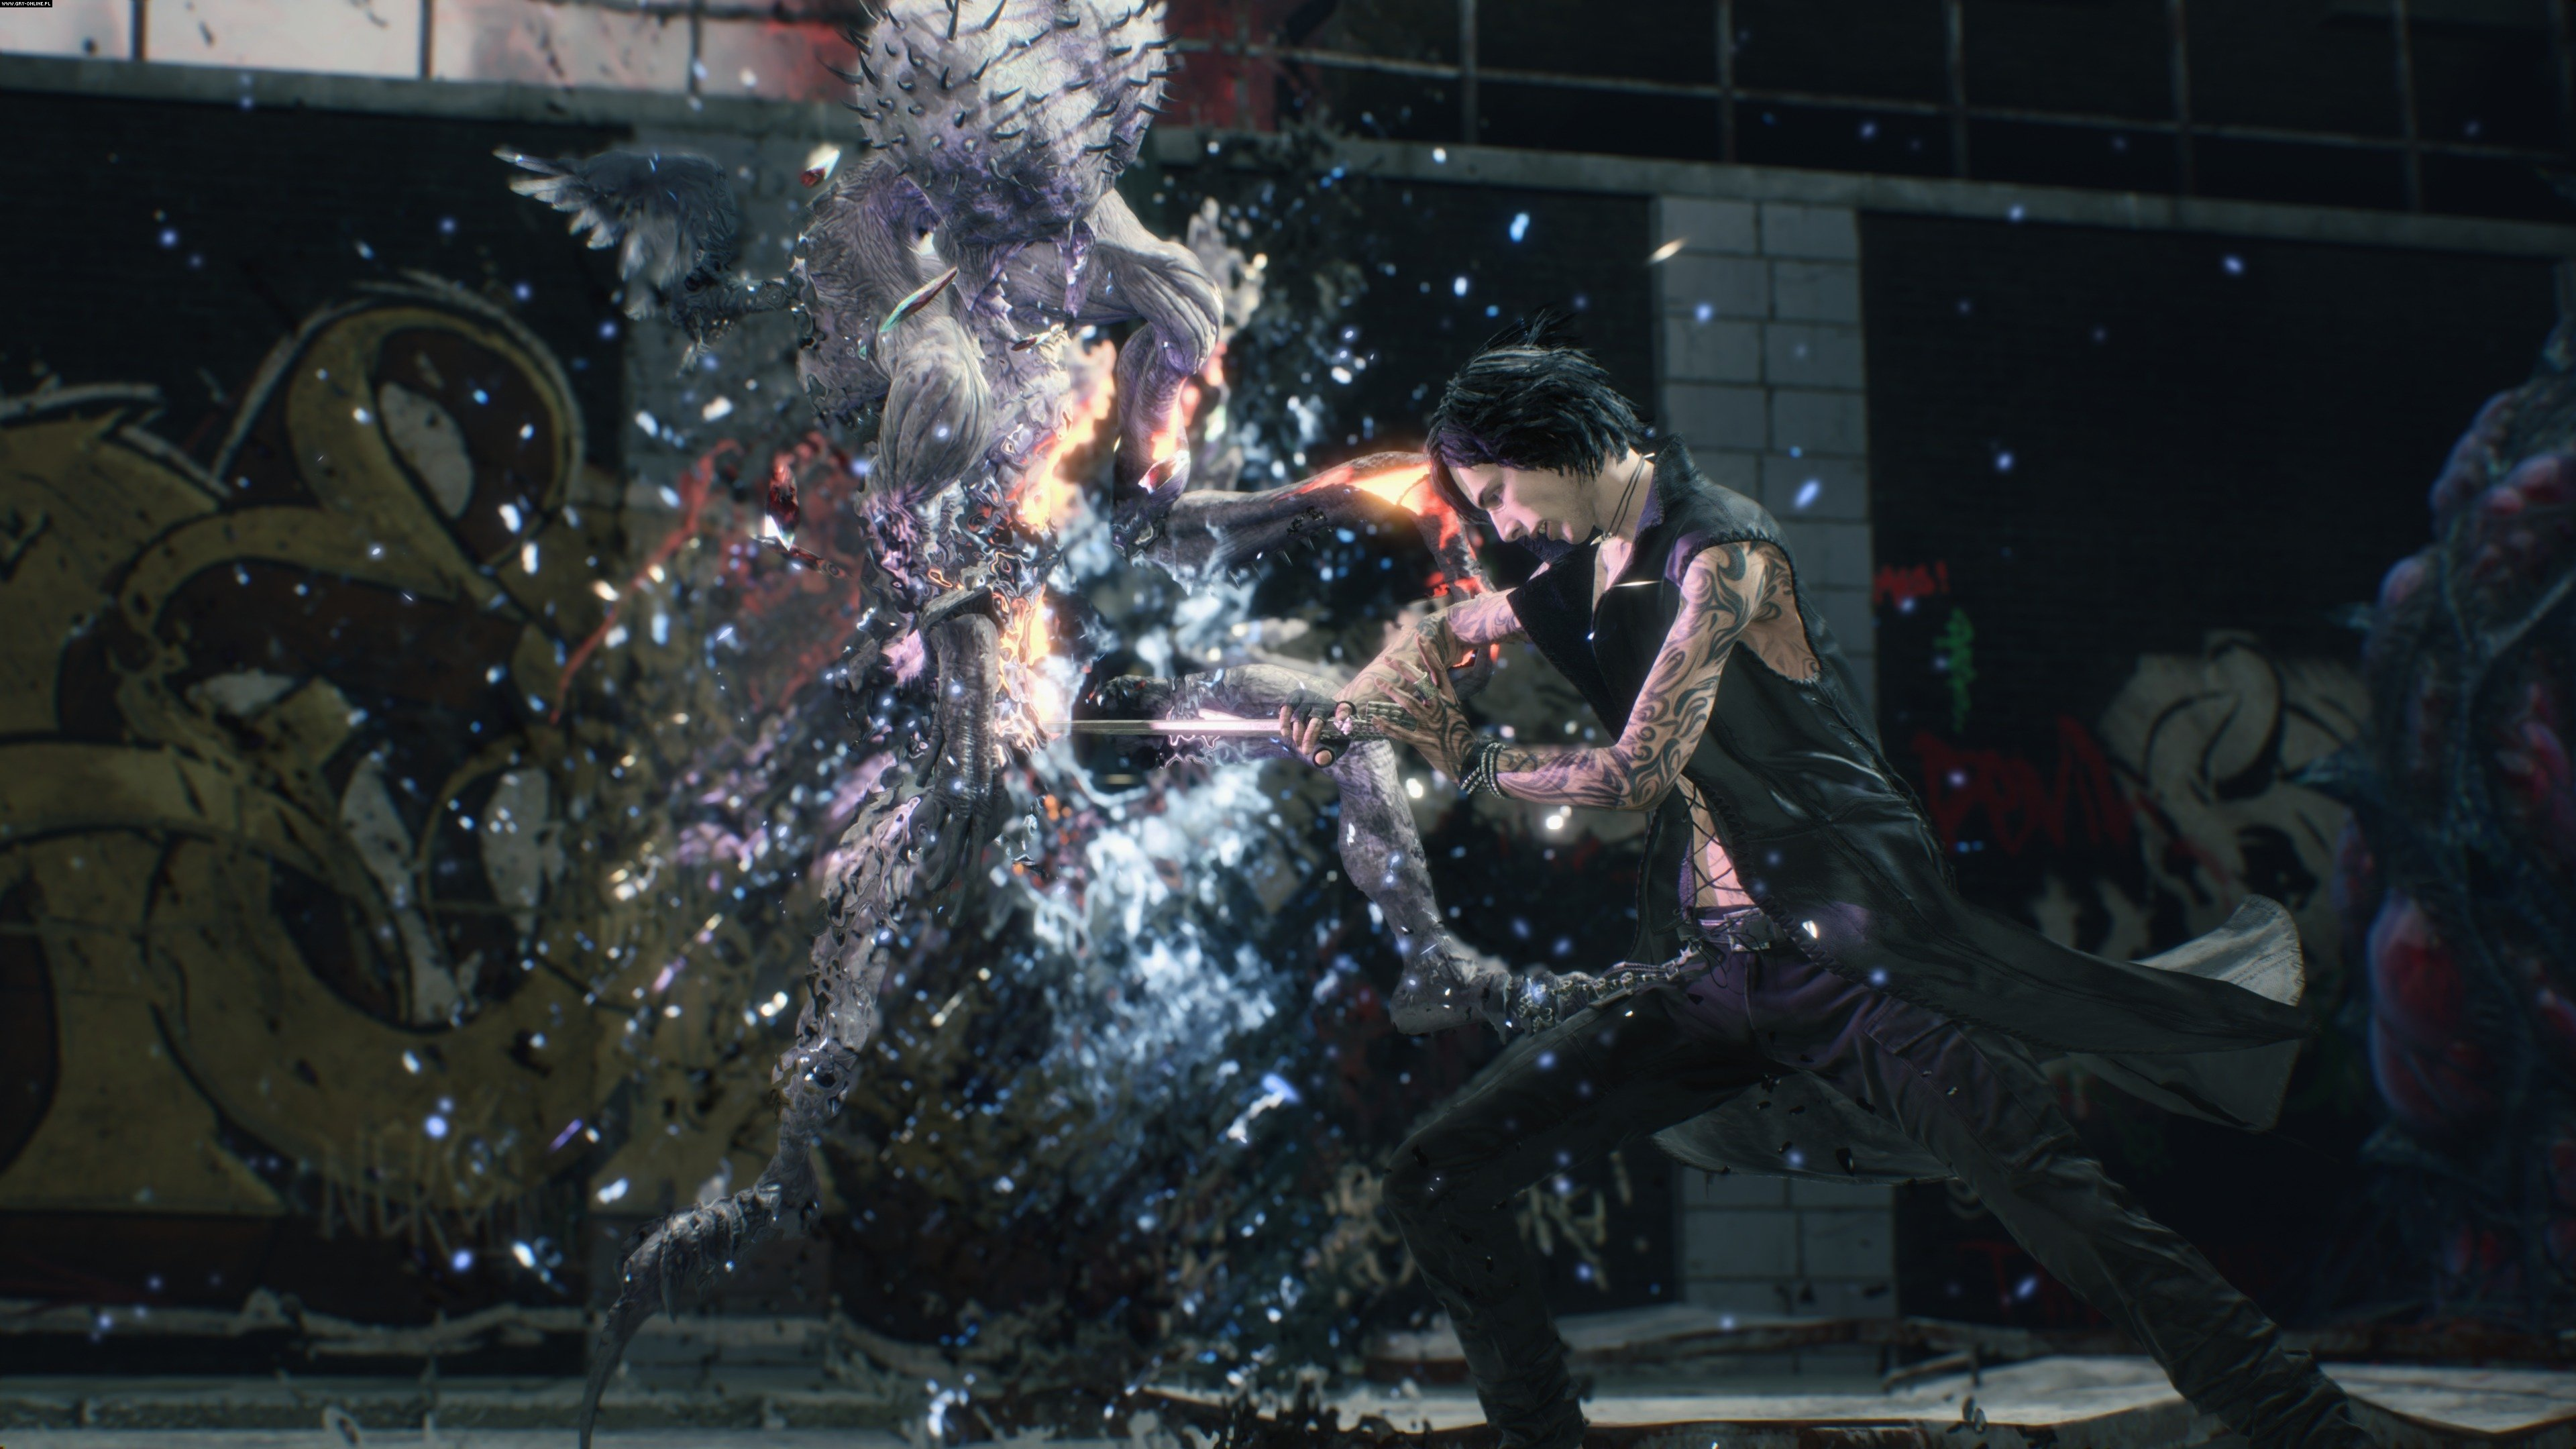 Devil May Cry 5 PC, PS4, XONE Games Image 17/81, Capcom